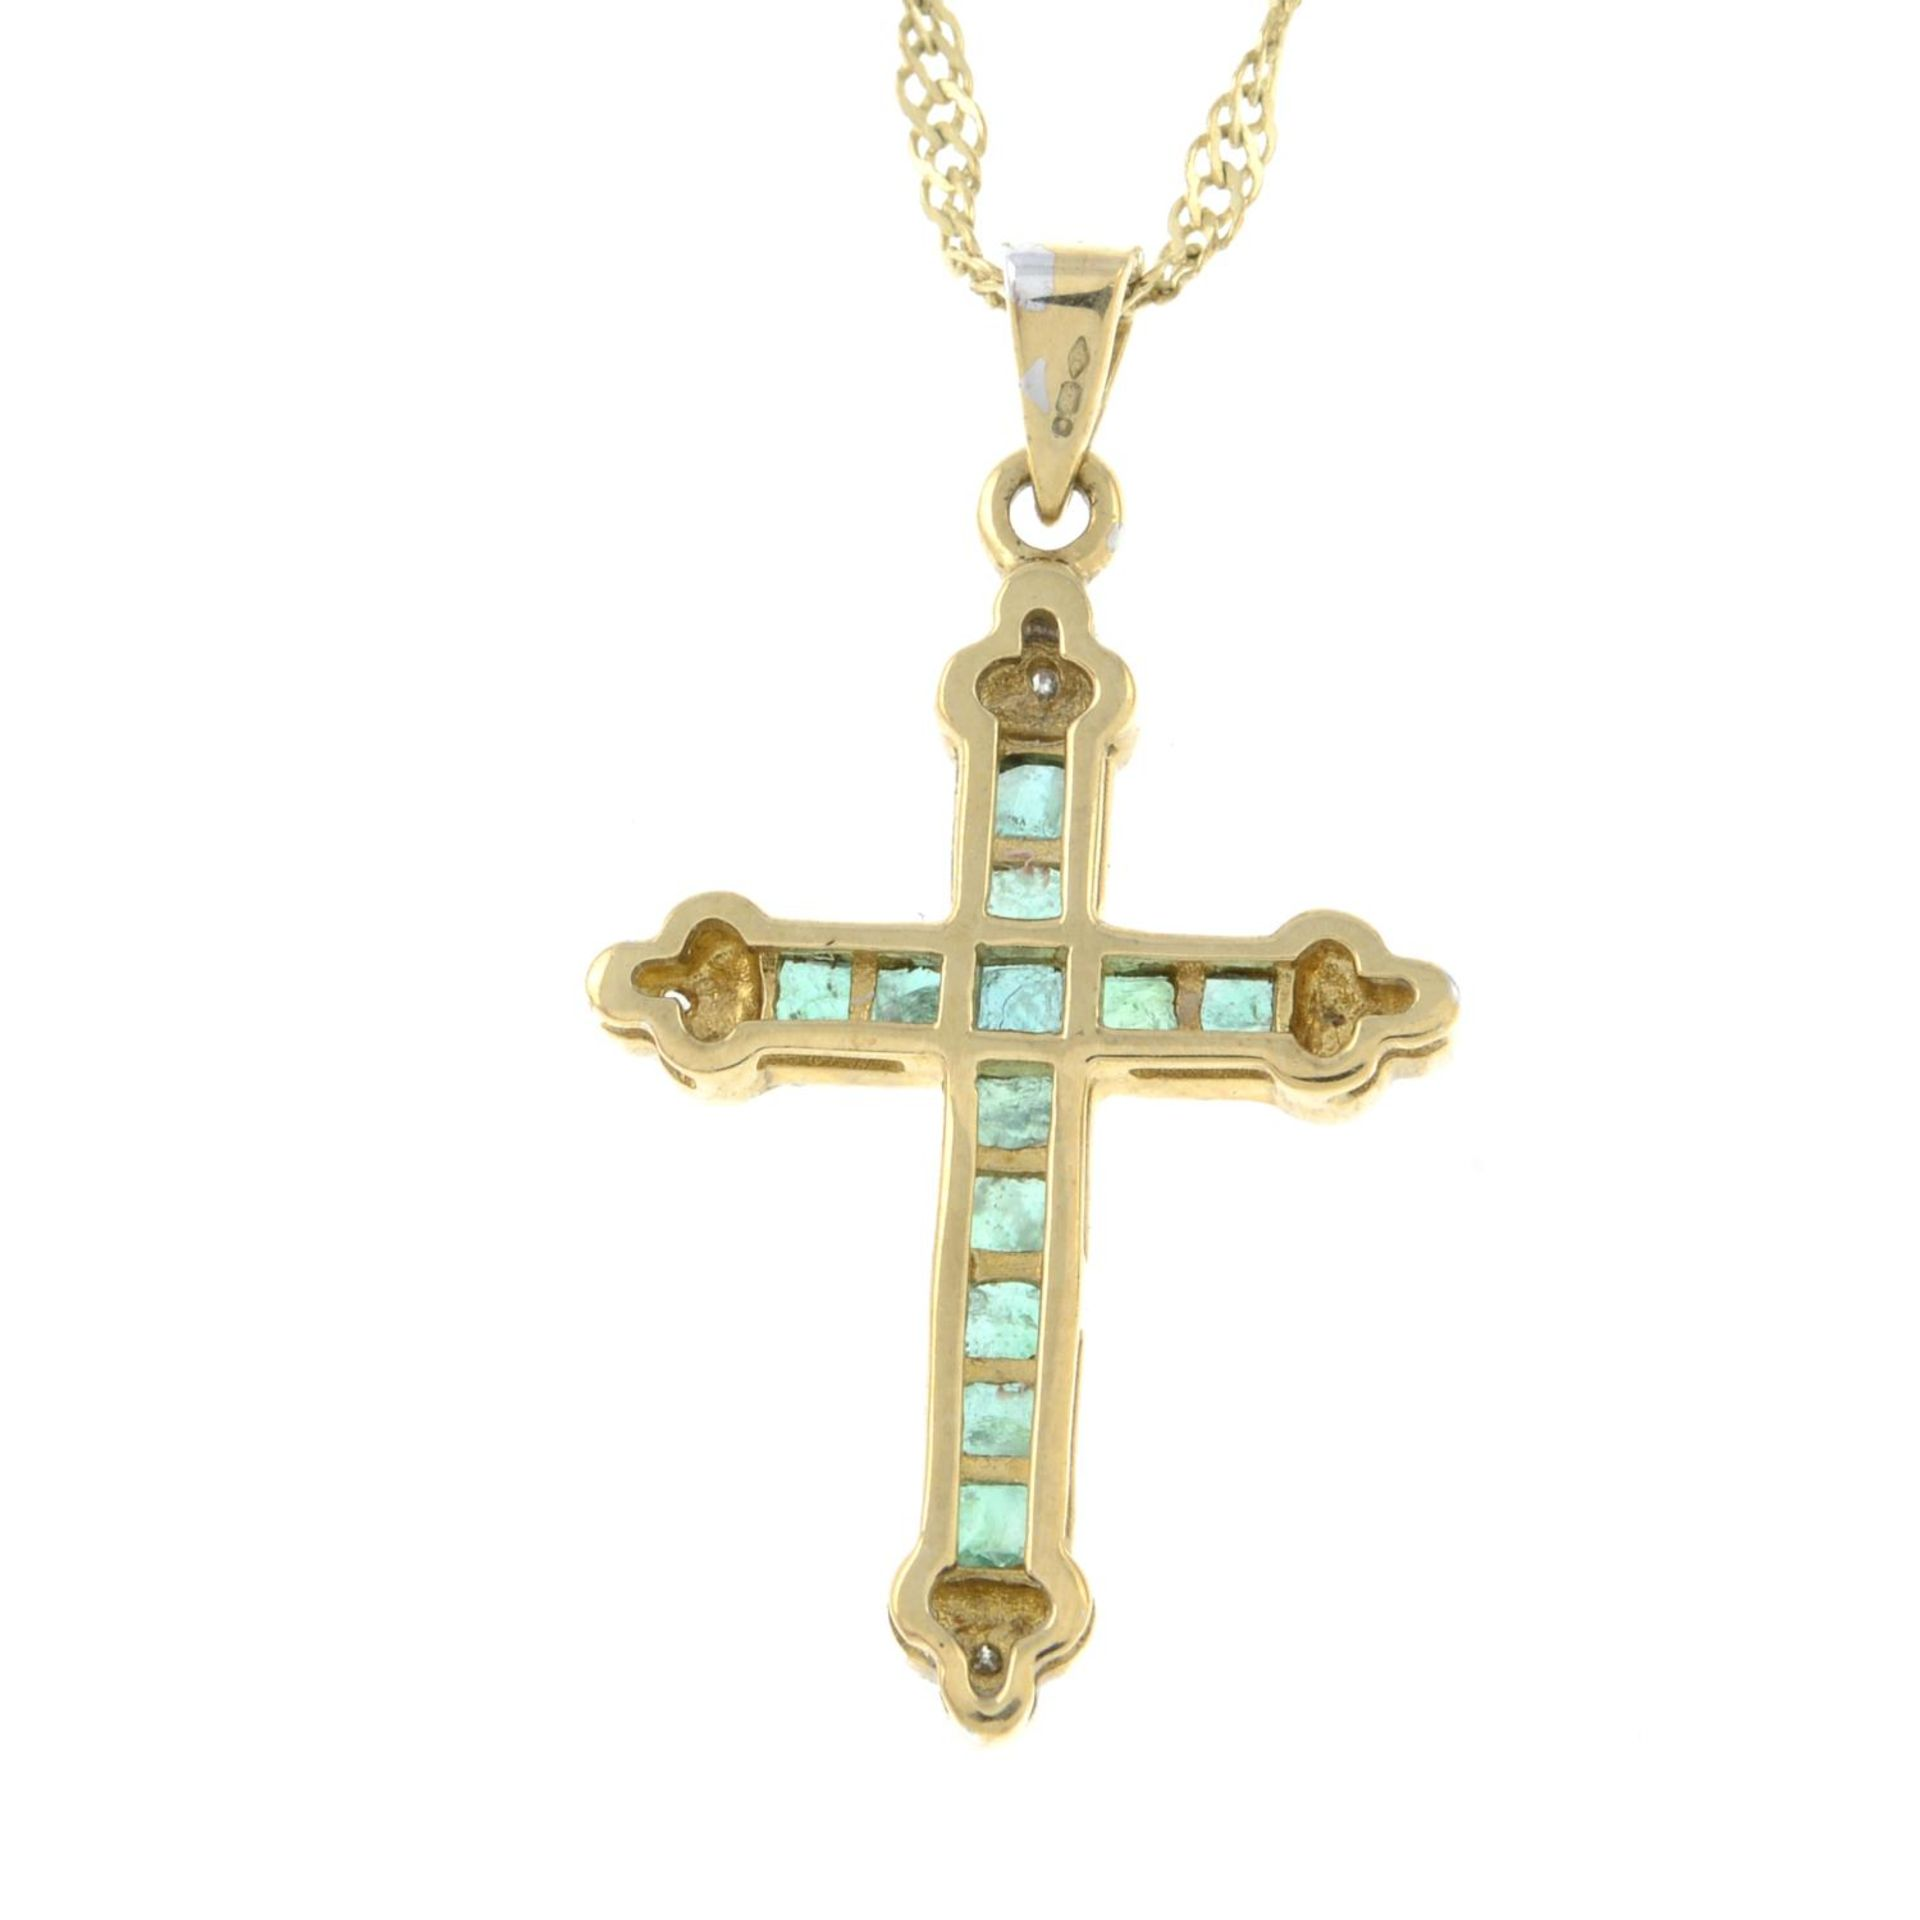 A 9ct gold emerald and diamond cross pendant, with 9ct gold chain.Hallmarks for 9ct gold. - Bild 2 aus 3